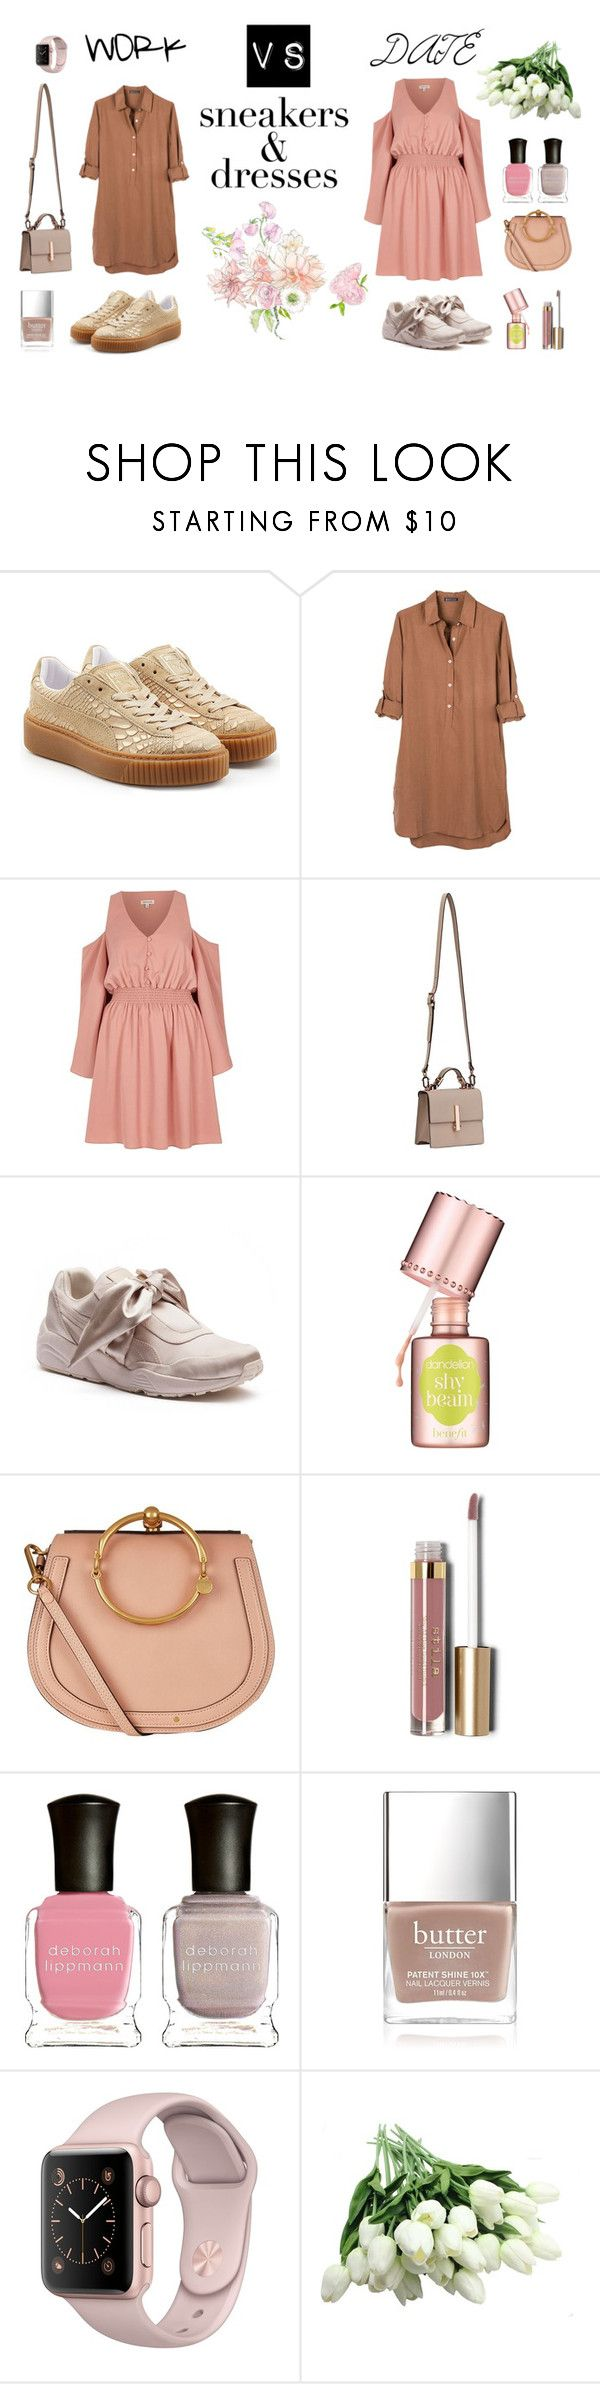 """work vs date"" by lanagur on Polyvore featuring мода, Puma, United by Blue, River Island, Kendall + Kylie, Benefit, Chloé, Stila, Deborah Lippmann и Butter London"